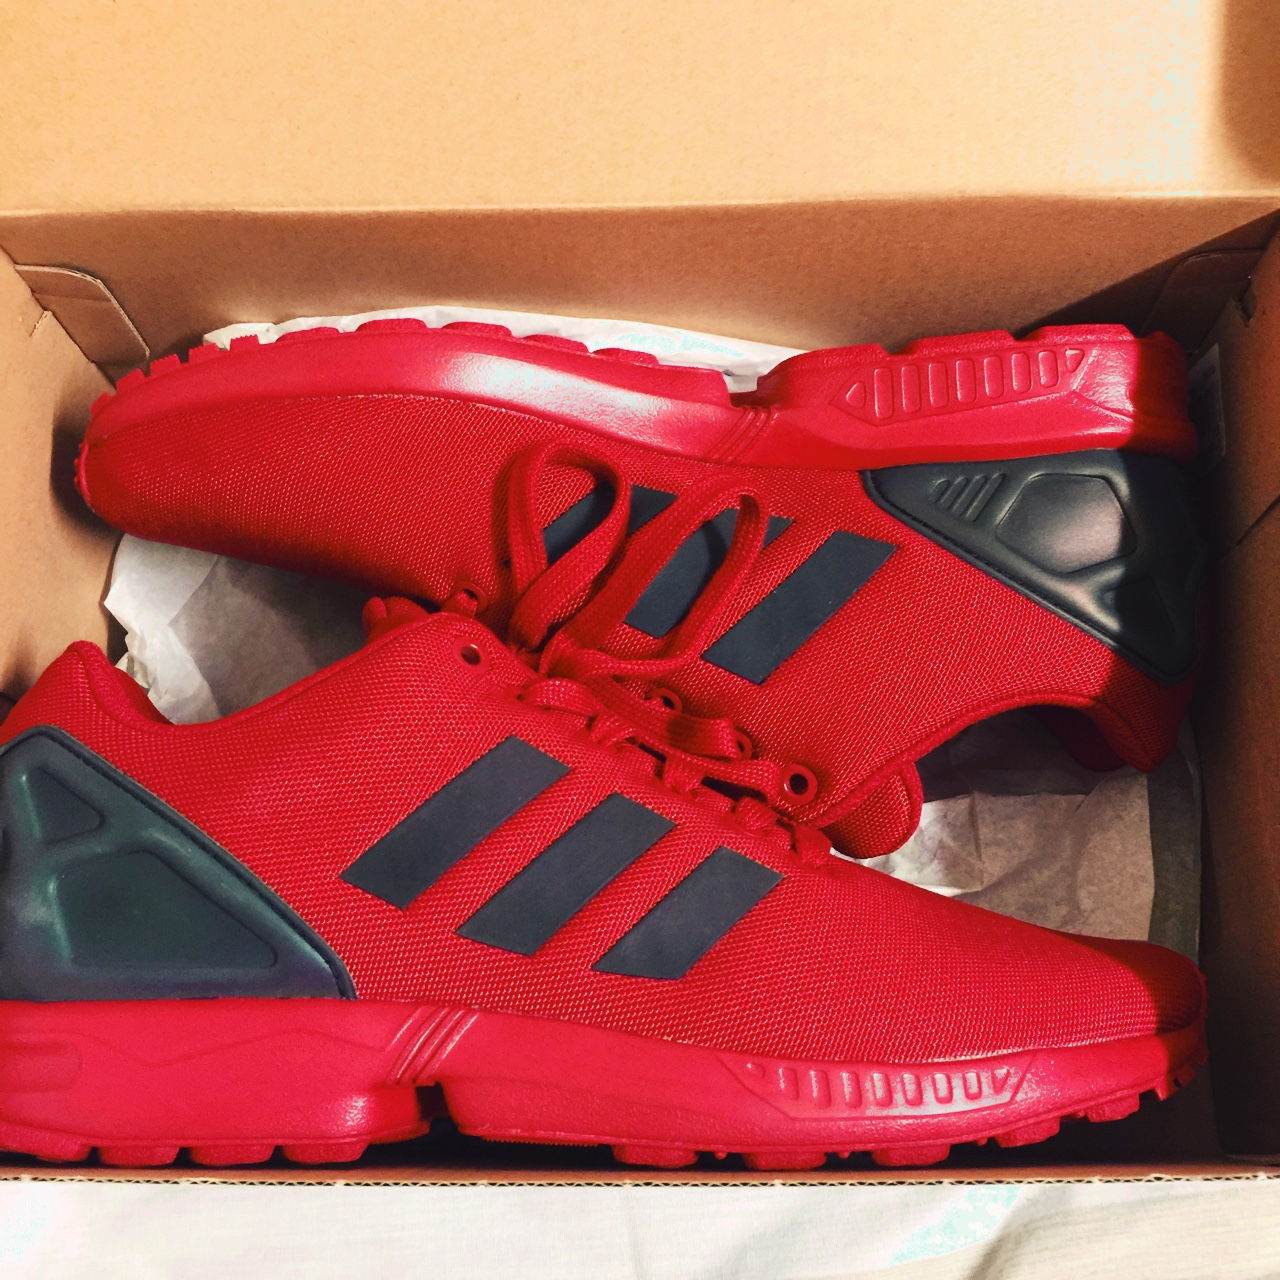 the best attitude c0882 12a0e Size 8 1/2 adidas originals zx flux red Haven't worn - Depop